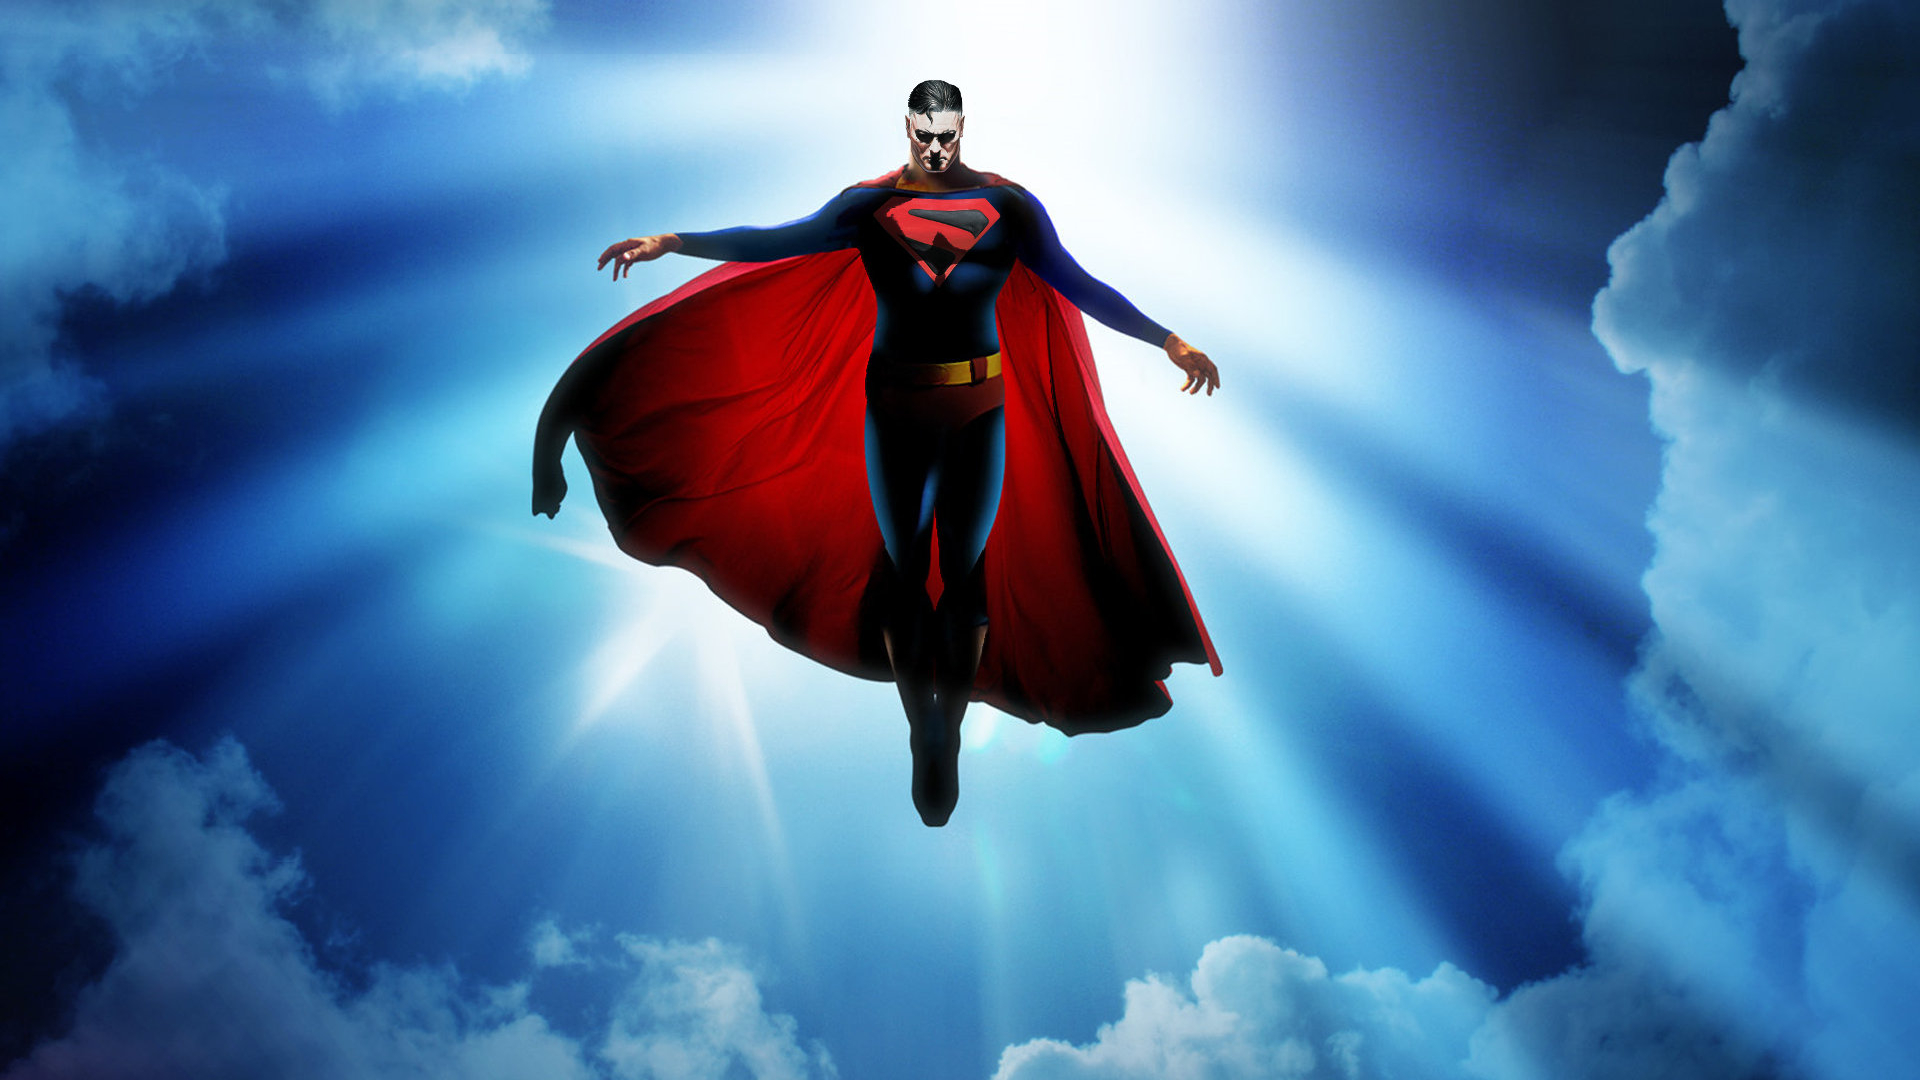 superman cool wallpapers - photo #46